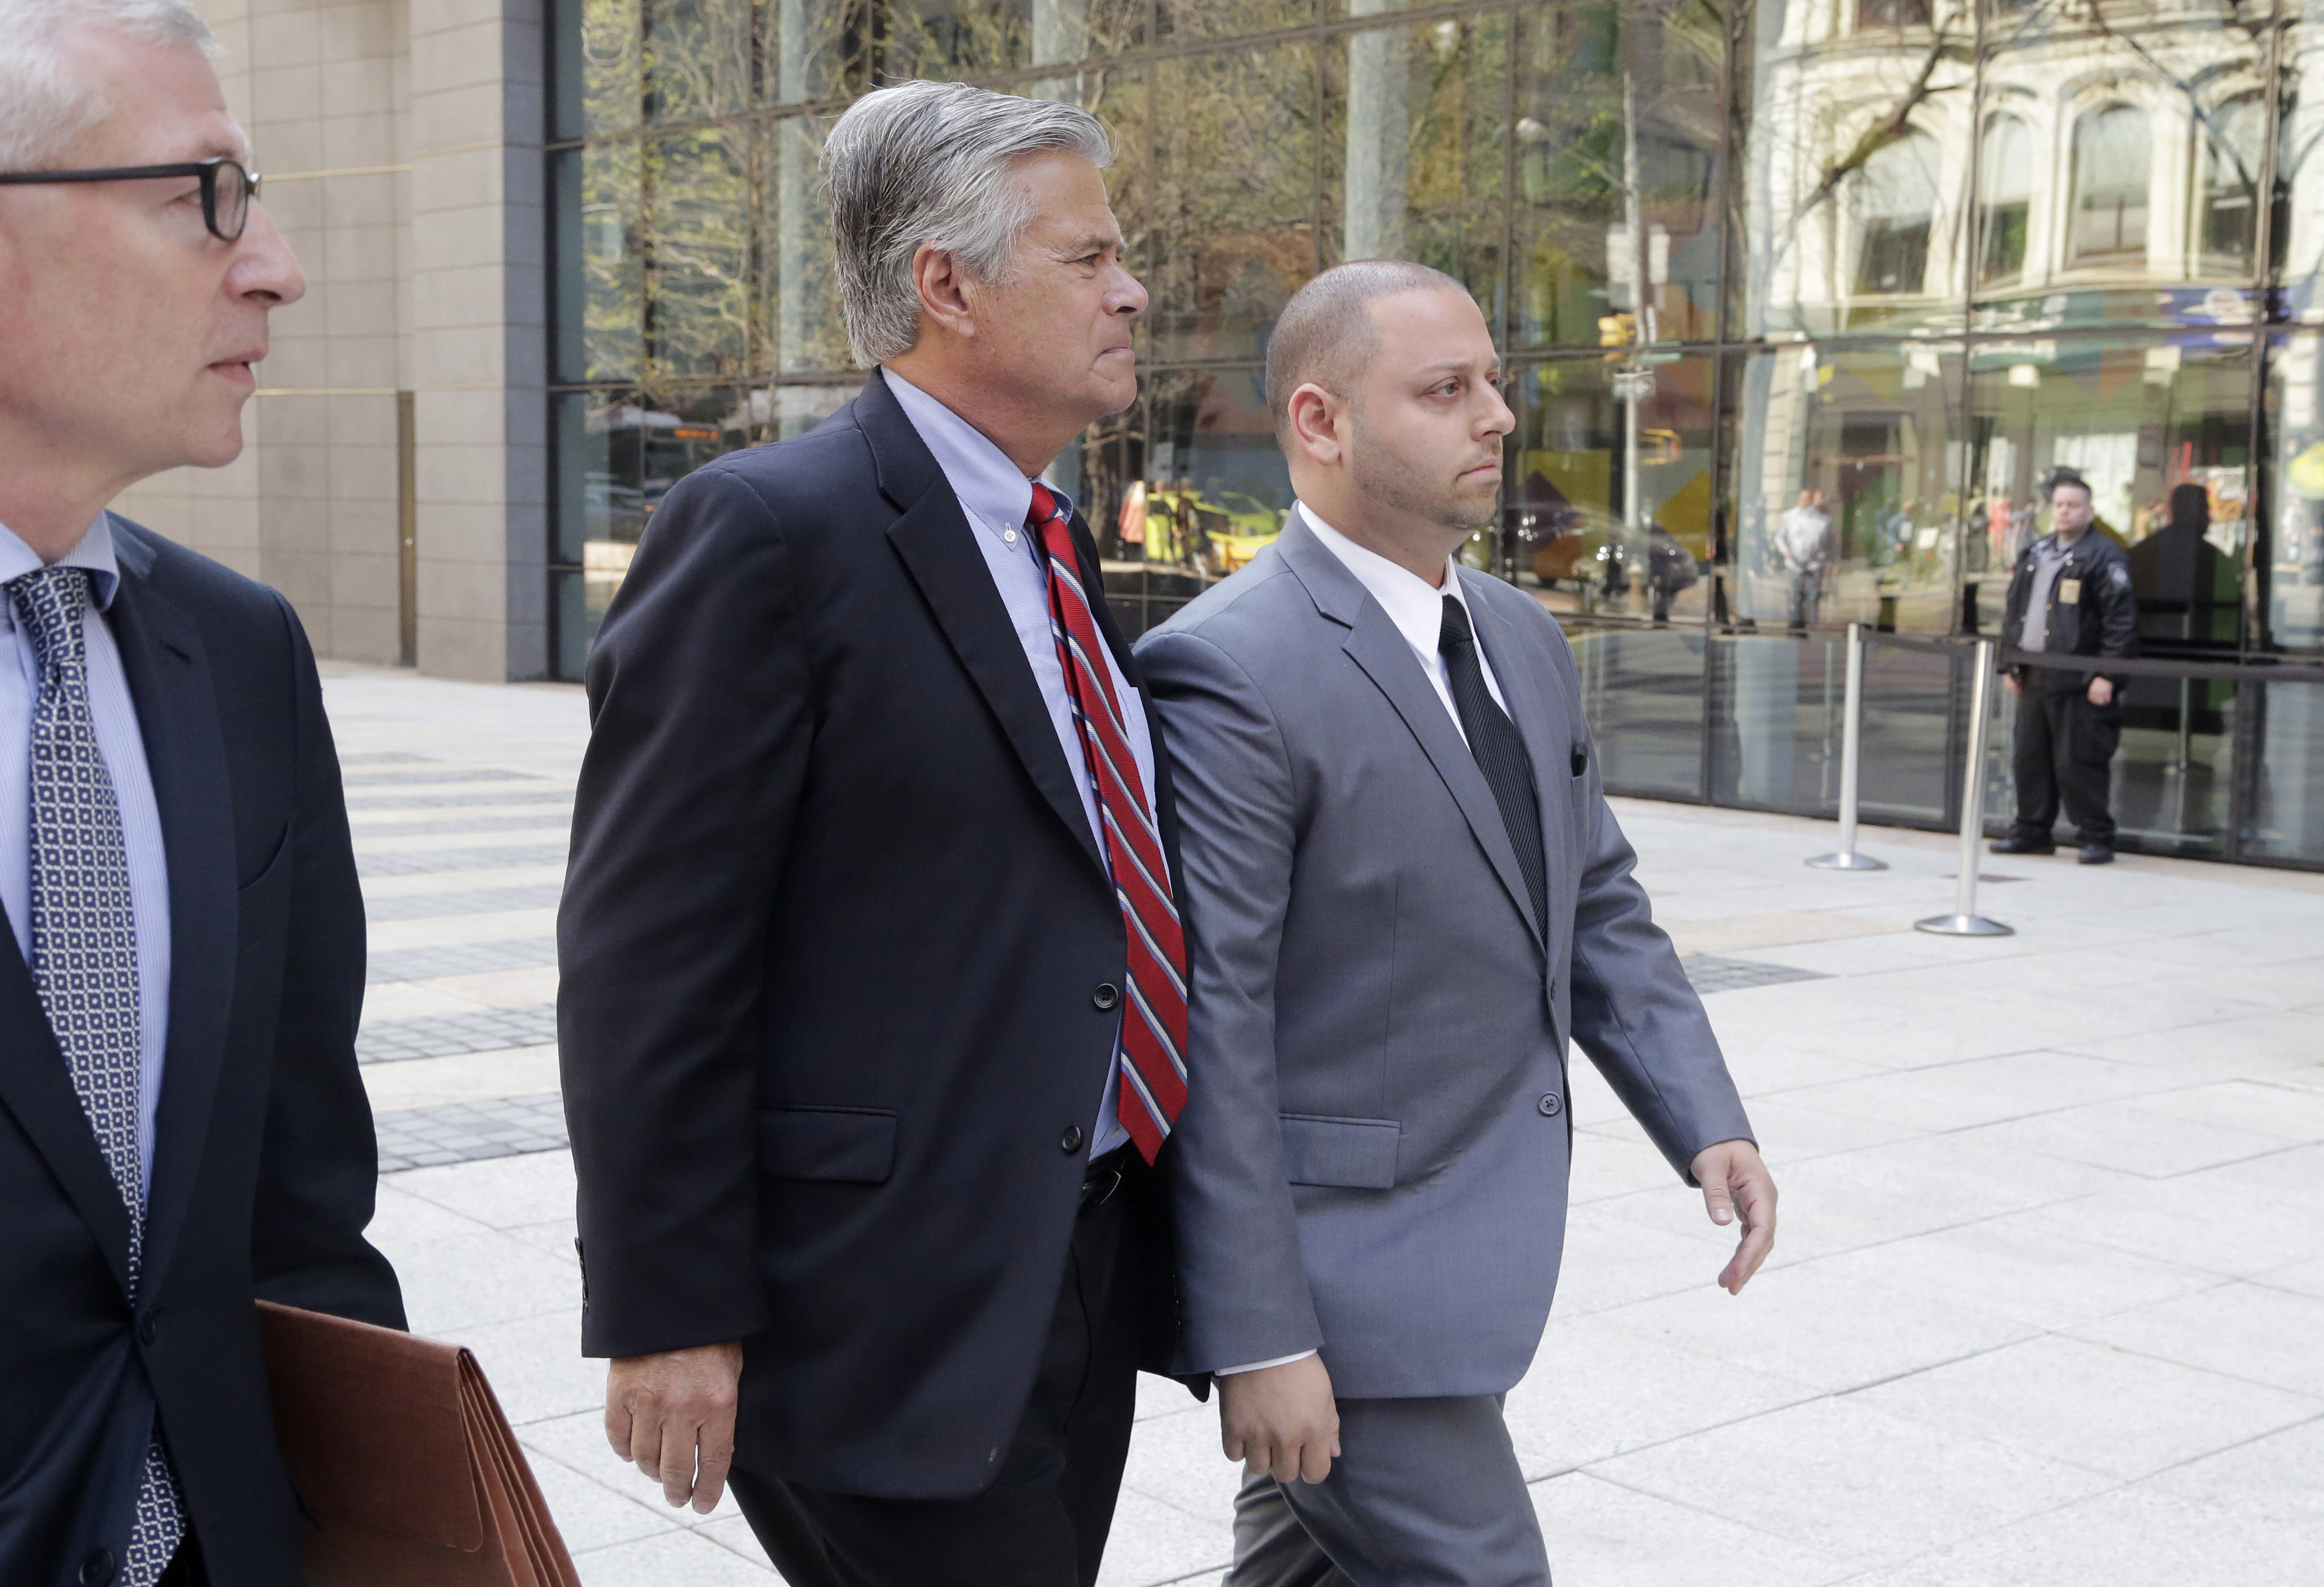 NY Senate leader says he is innocent of corruption charges